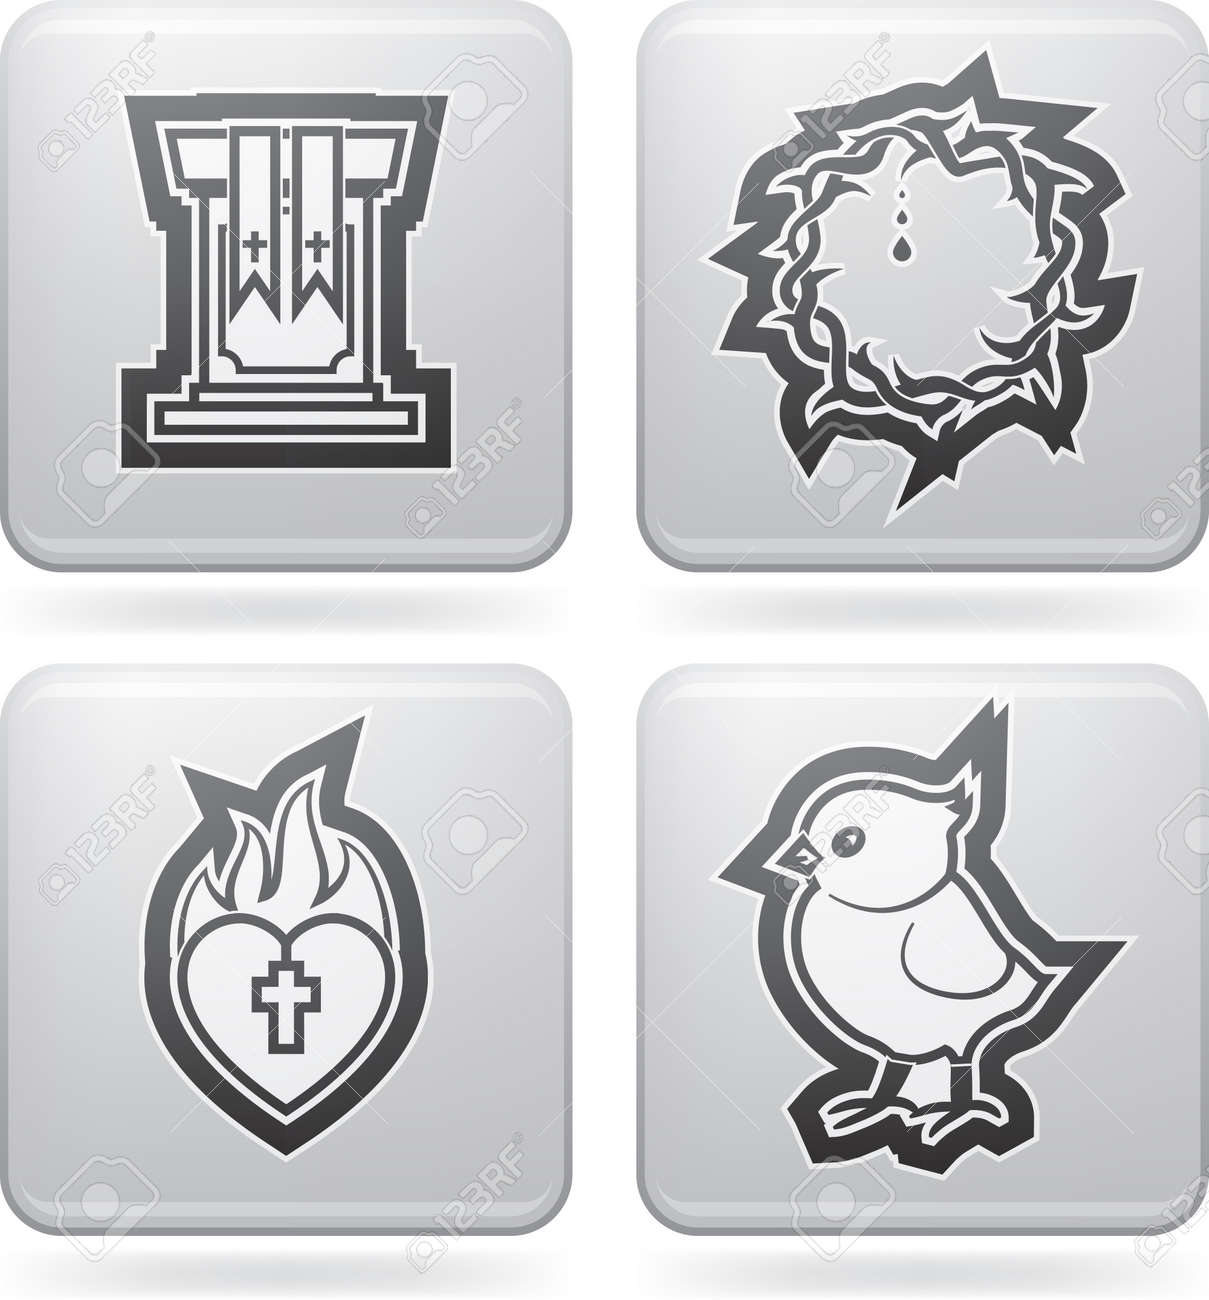 Icons And Symbols Of The Christian Easter Royalty Free Cliparts